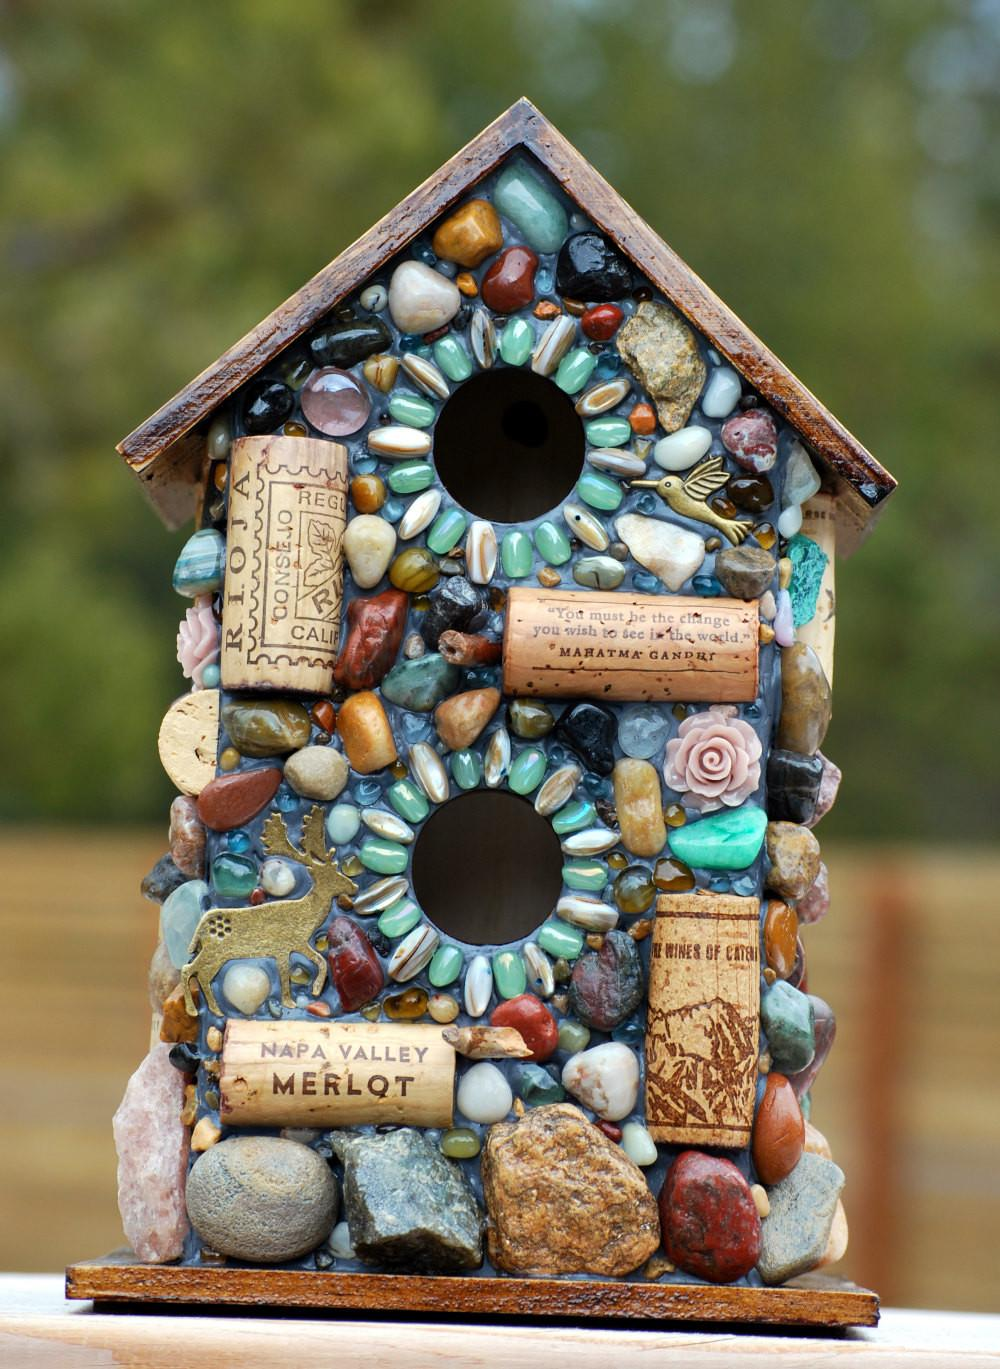 Outdoor Birdhouse Mosaic Garden Art Colorful Stones